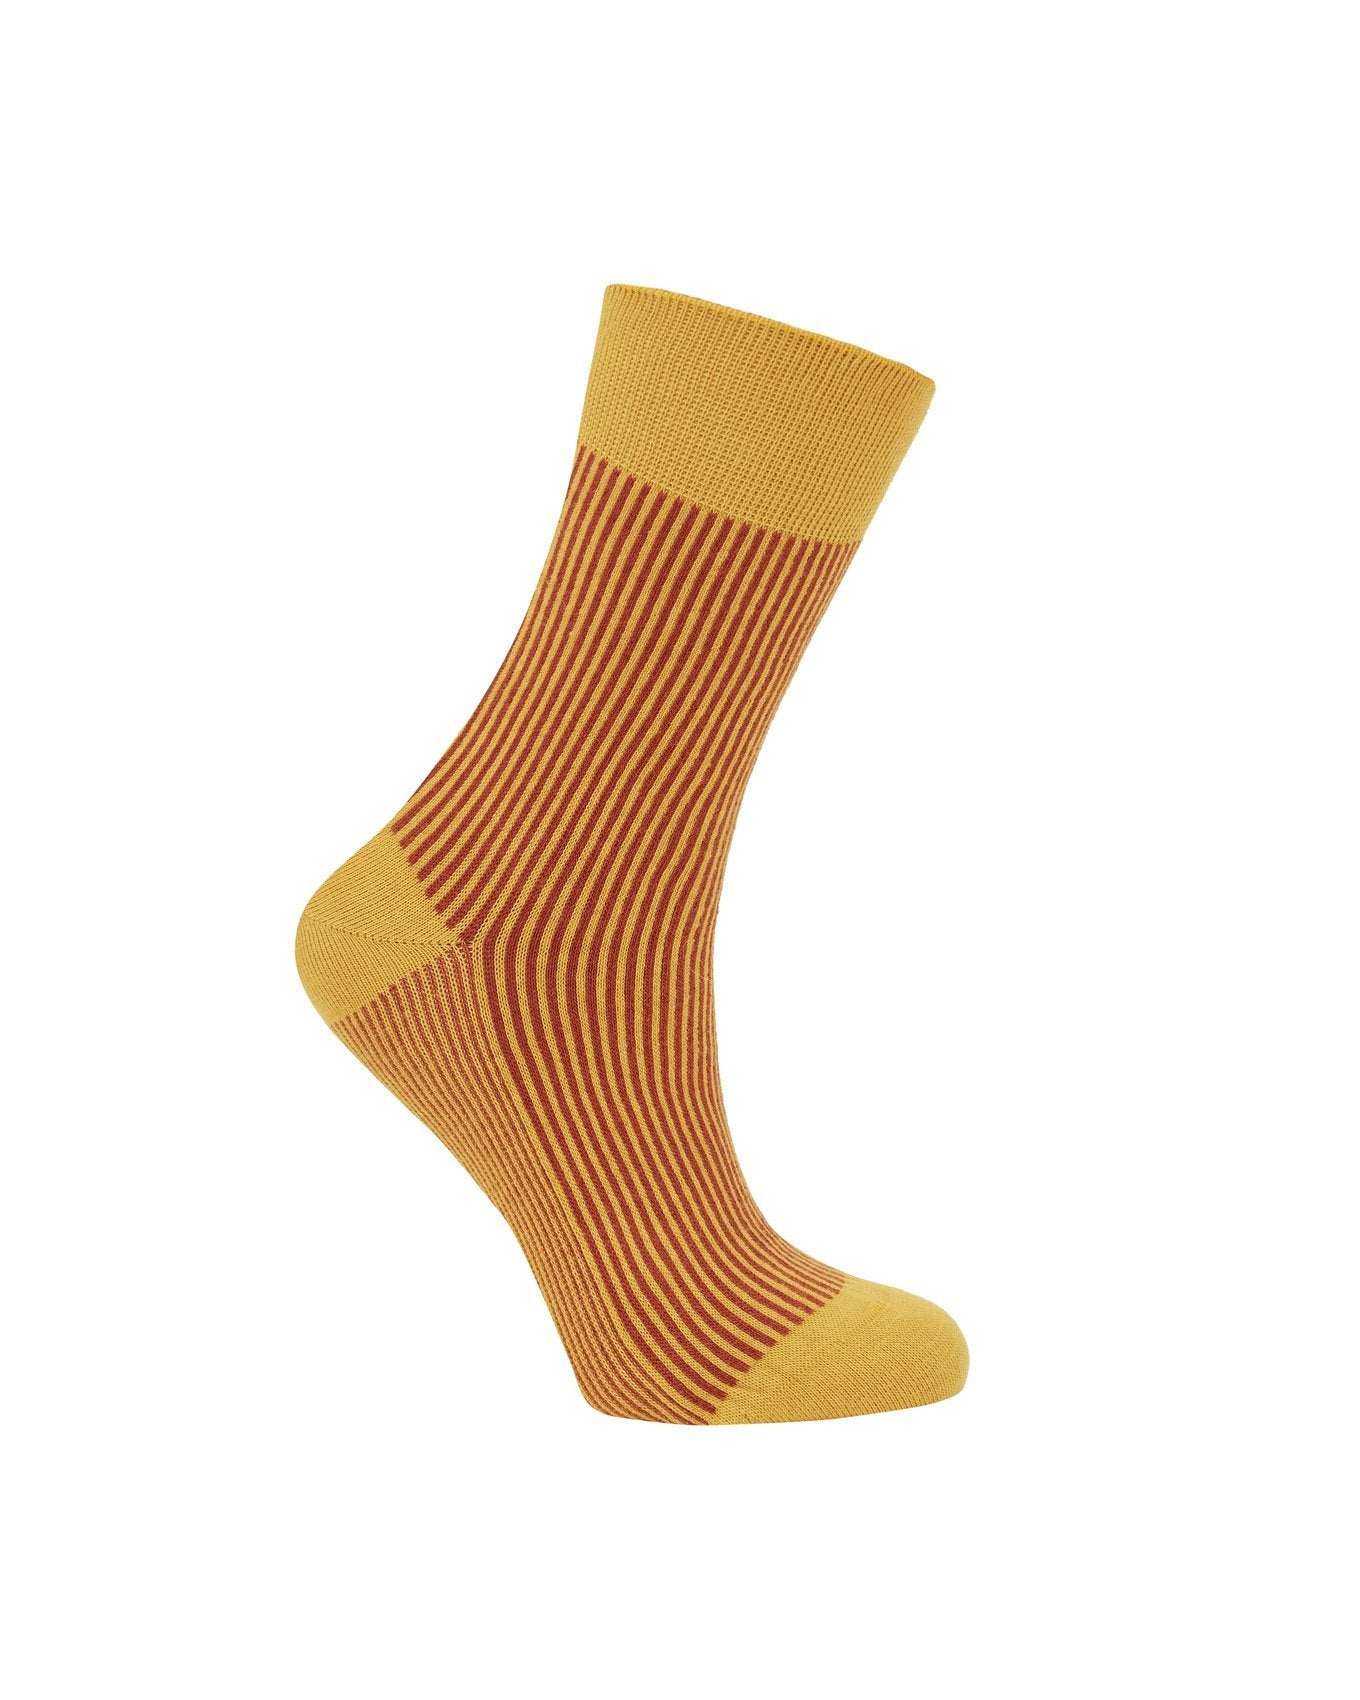 Socks - VERTICAL Gold - GOTS Organic Cotton Socks